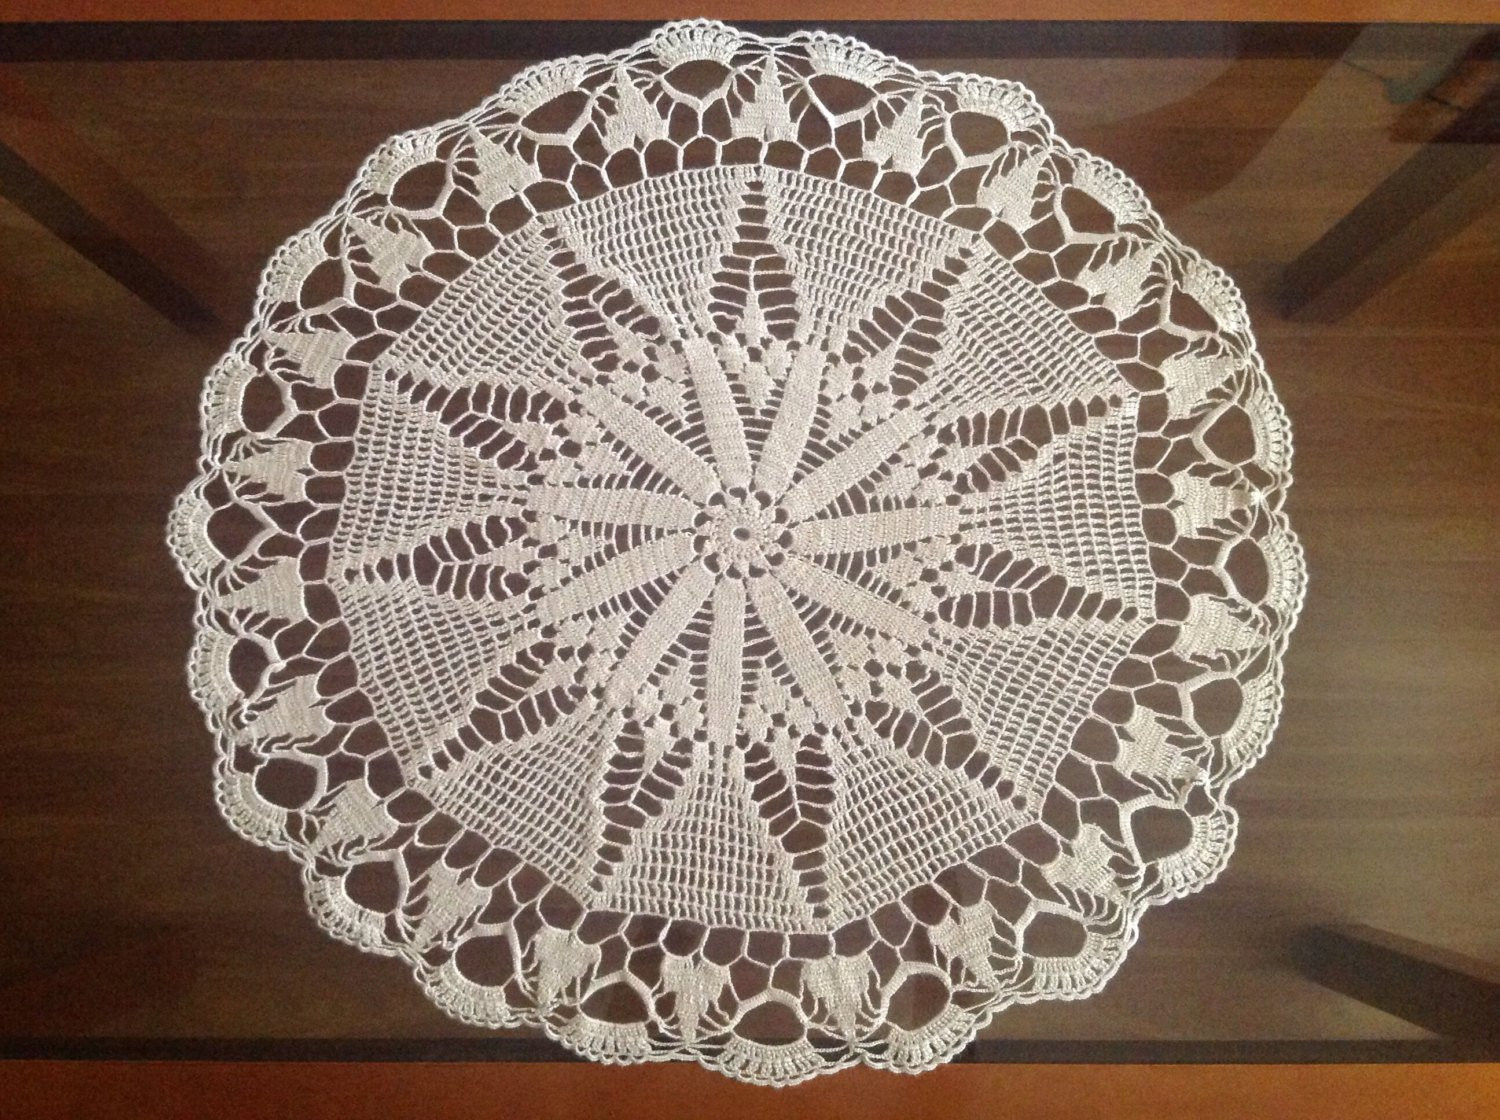 Elegant Handmade Doily Crochet Cotton Tablecloth Decoration Handmade Crochet Of Delightful 40 Pics Handmade Crochet